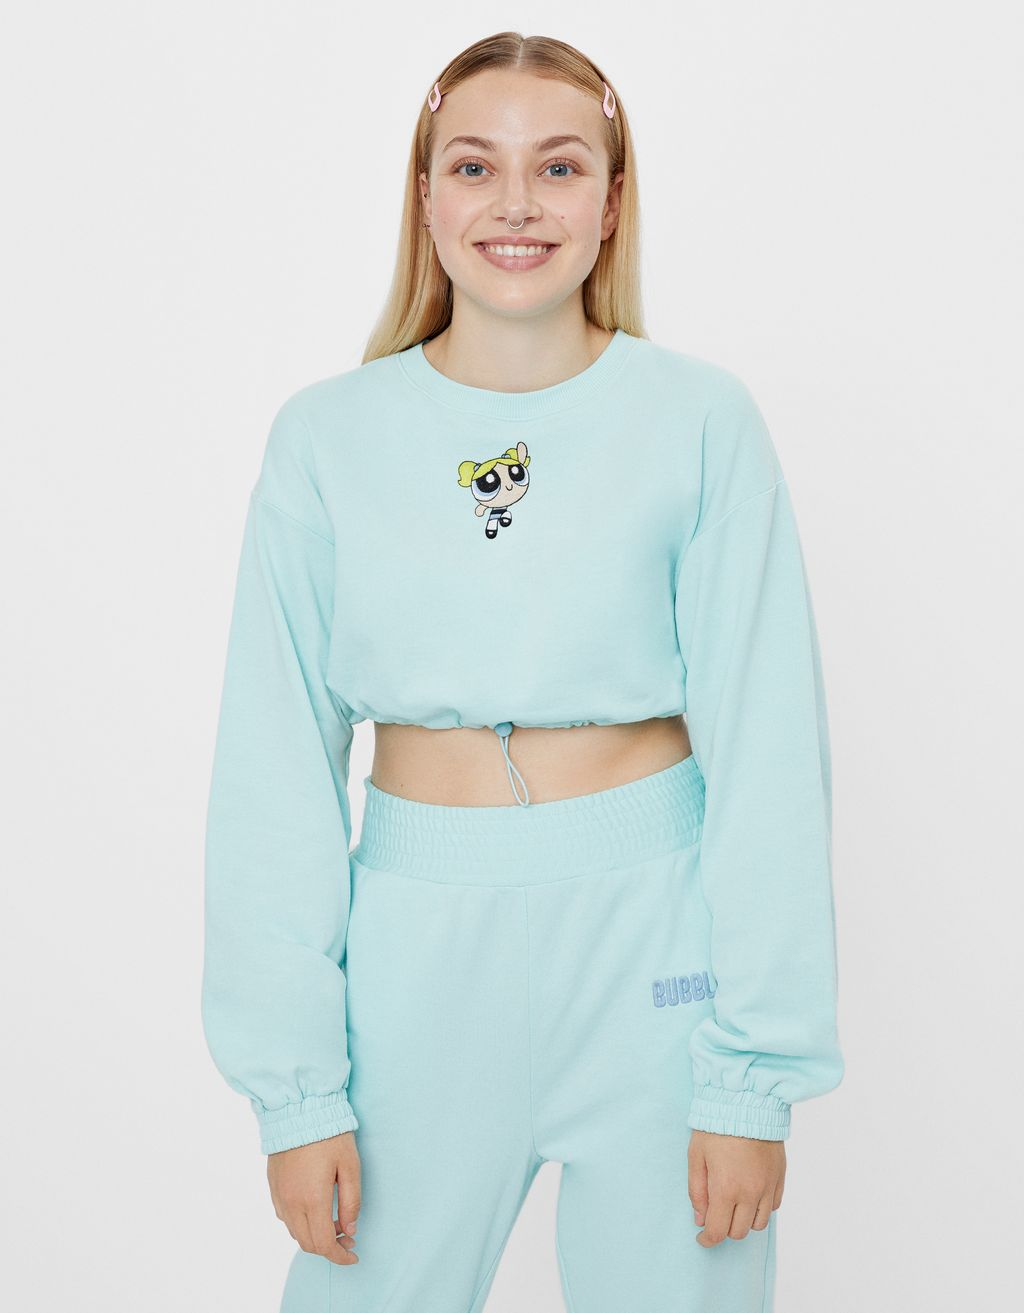 Cropped Powerpuff Girls sweatshirt